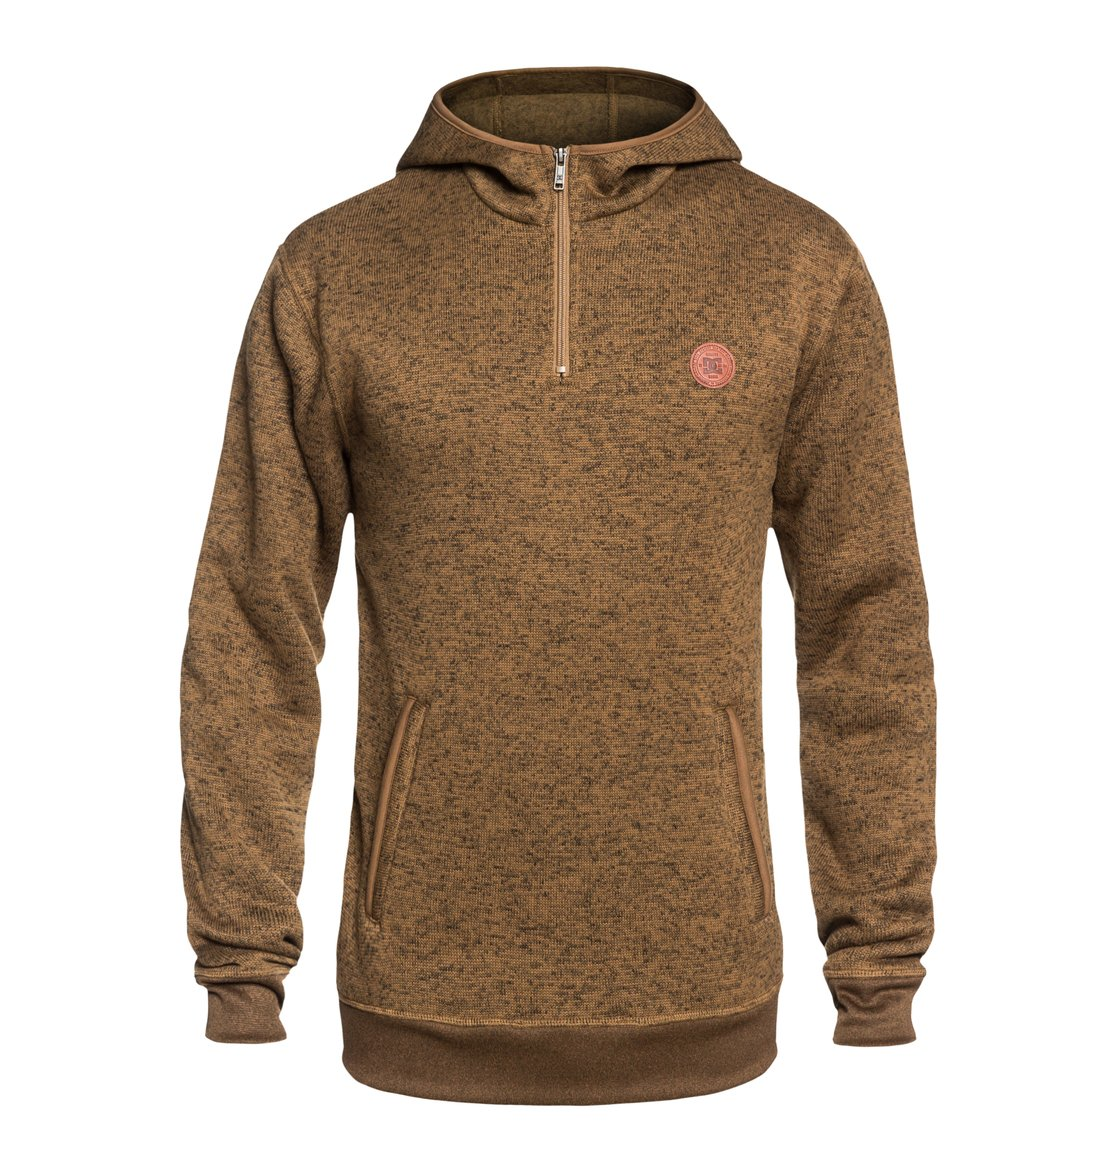 Polar Fleece Bettwäsche Men's Elby Polar Fleece Hoodie Edypf03022 | Dc Shoes